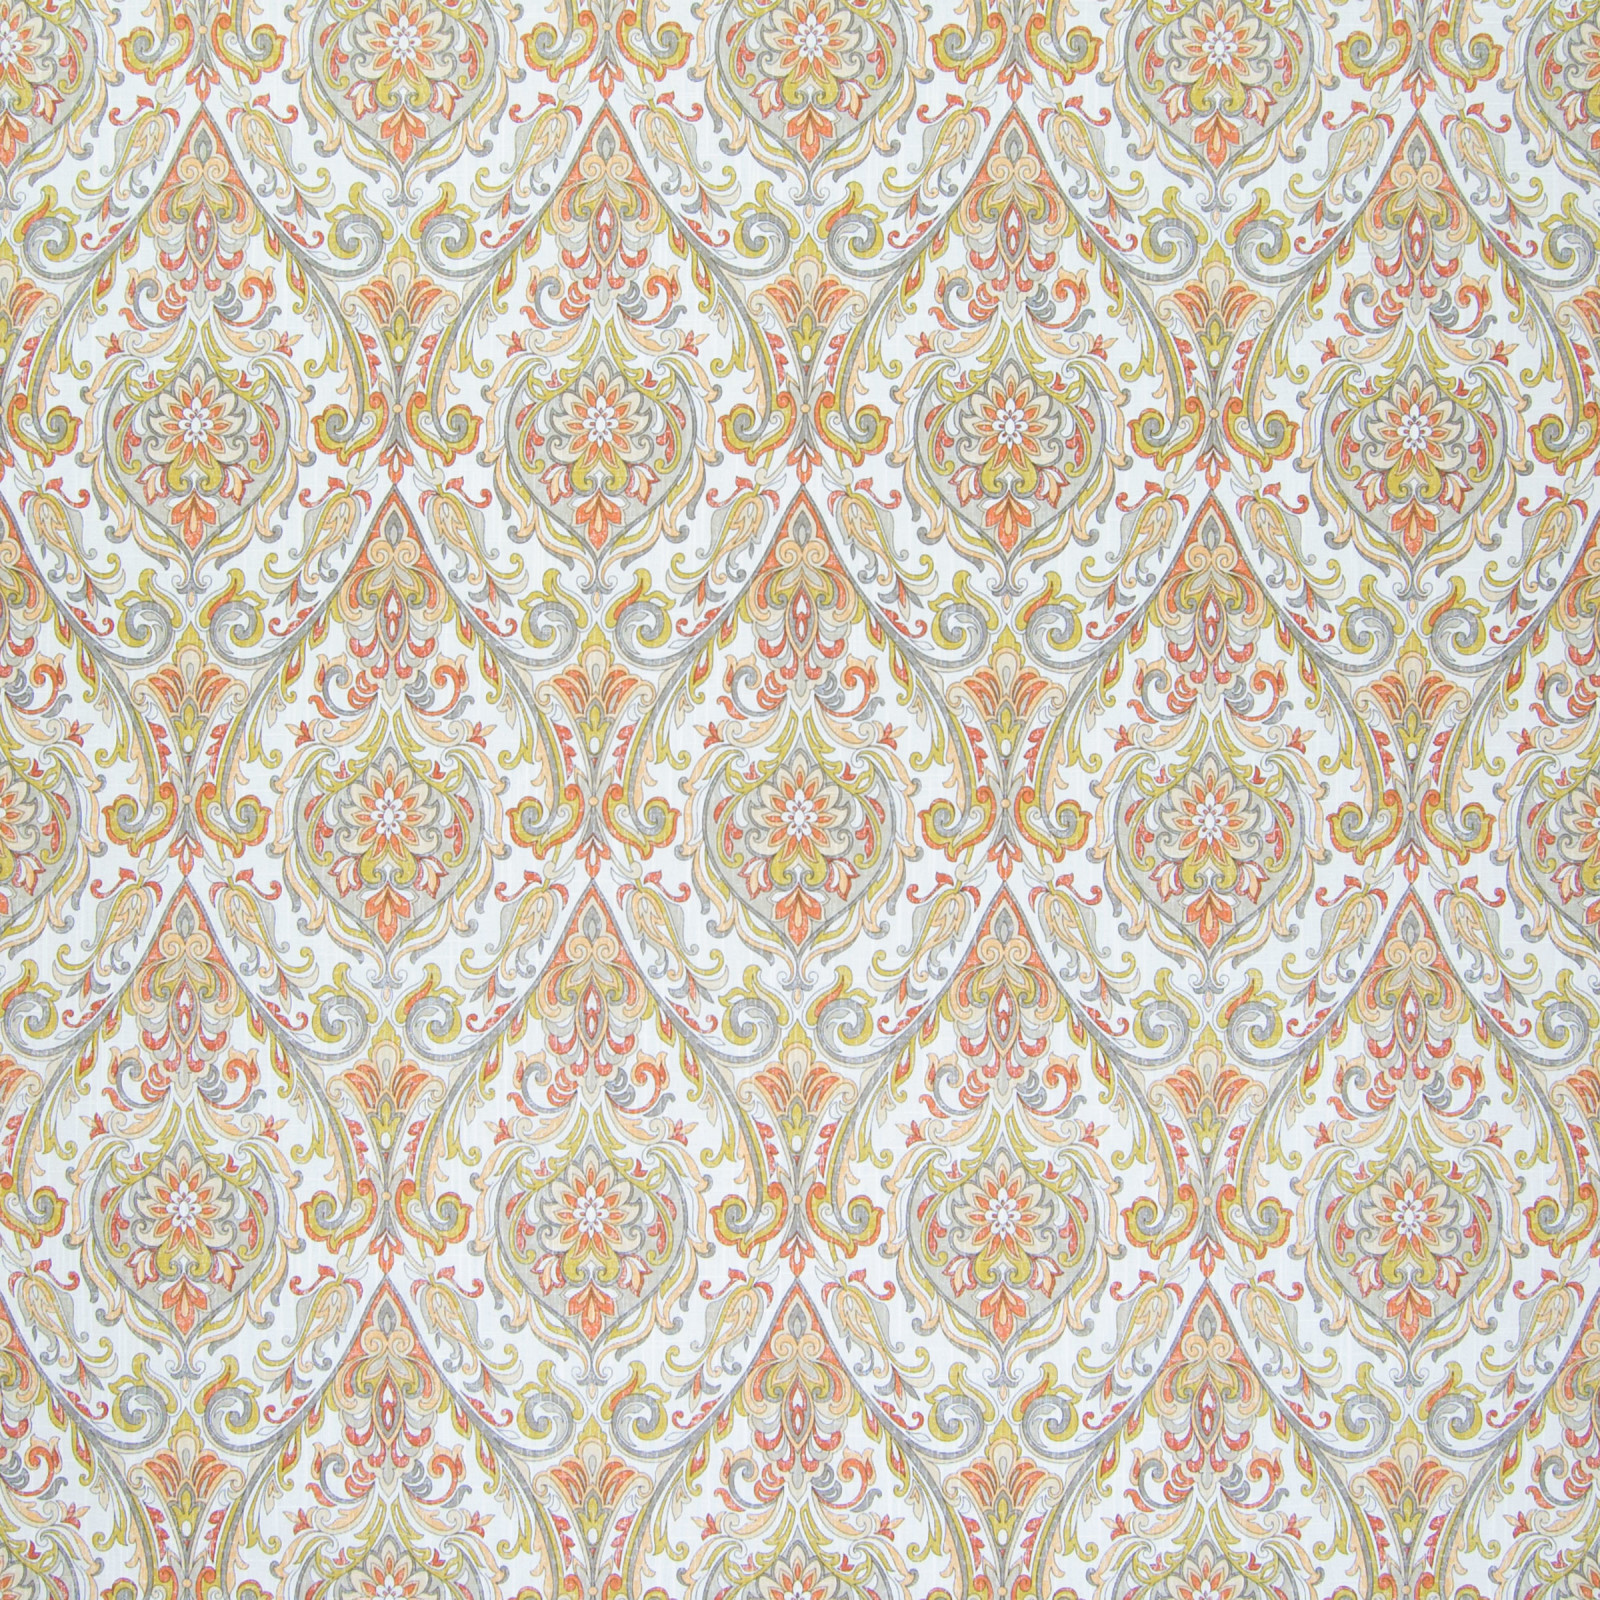 B6534 Candelight Greenhouse Fabrics